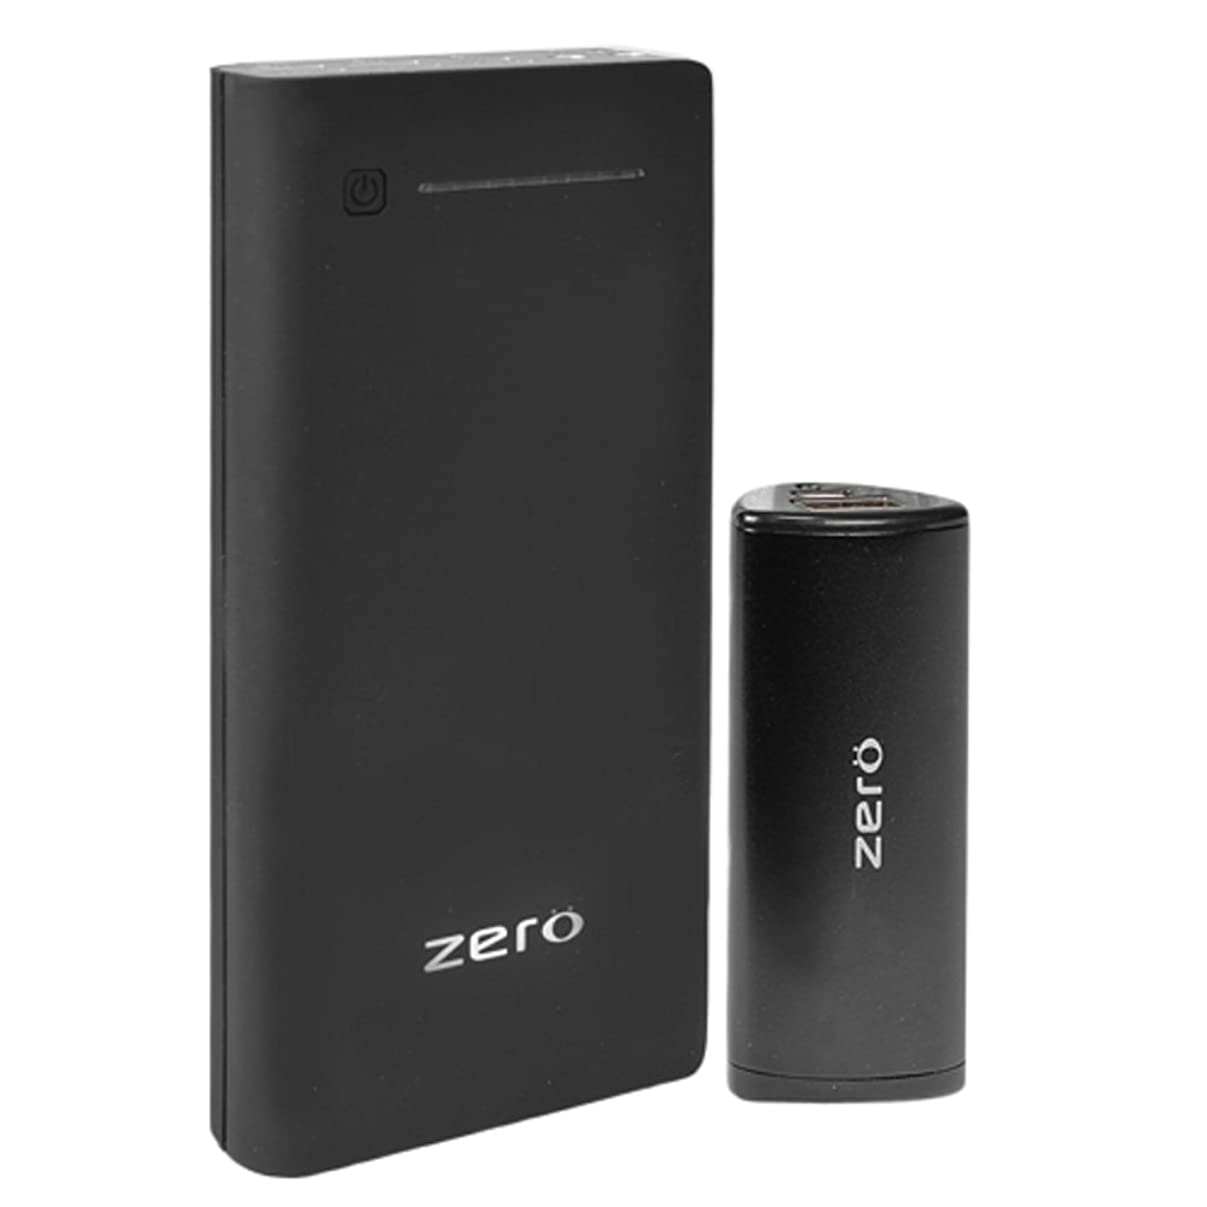 Zero Laptop Power Bank/Charger with Bonus Mini Power Bank y78648045281974